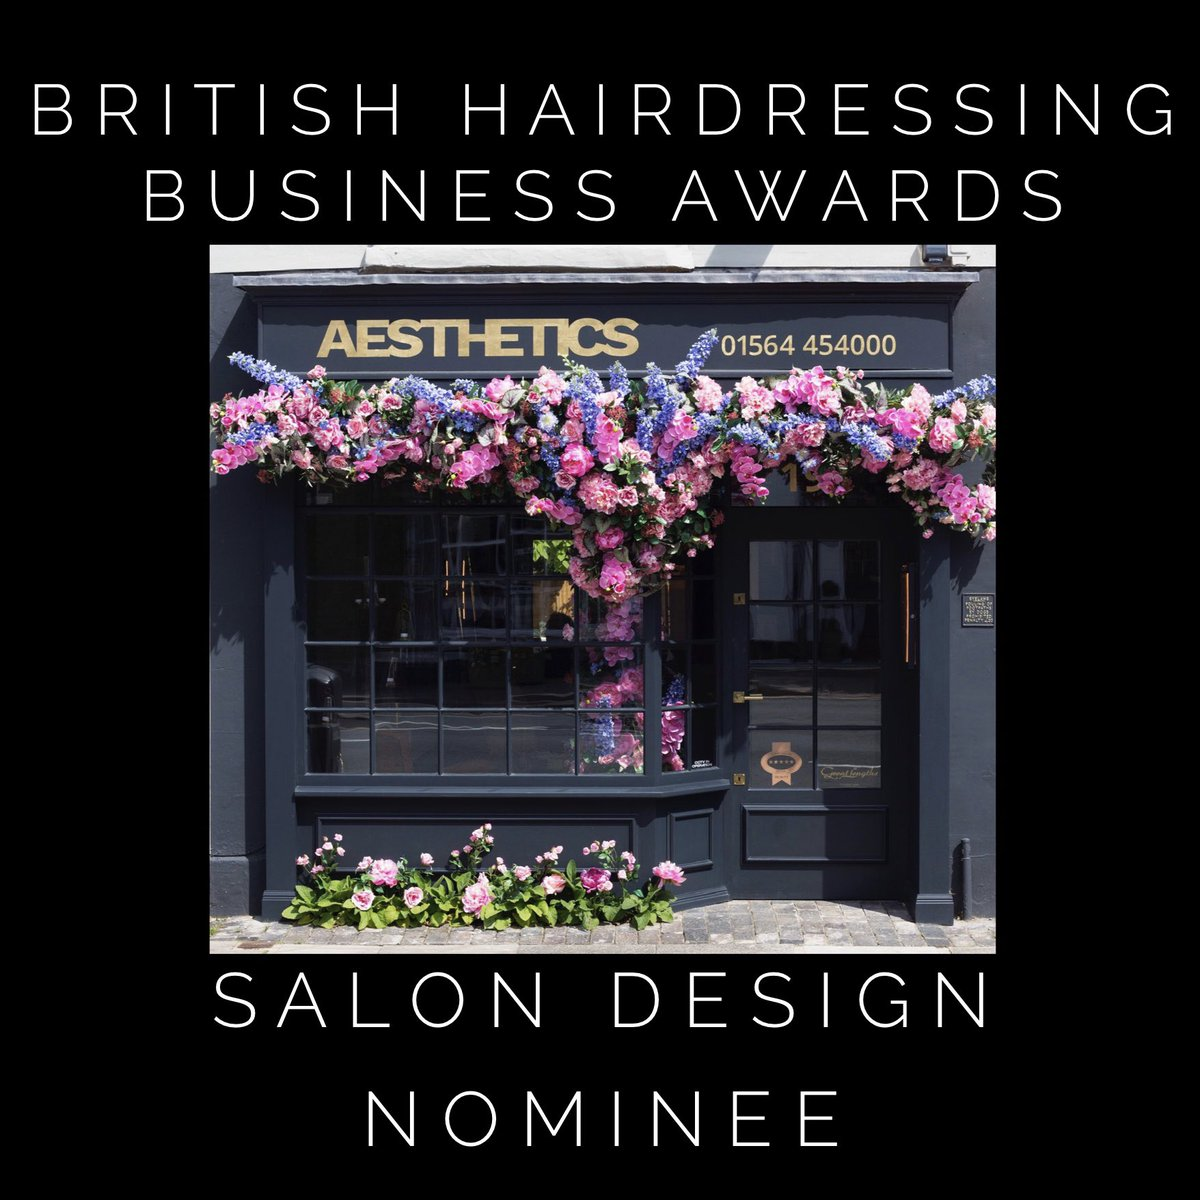 Aesthetics Hair Salons On Twitter Only A Few Days Before The British Hairdressing Business Awards Our Henley In Arden Salon Is Up For The Salon Design Award So Fingers Crossed For A Win